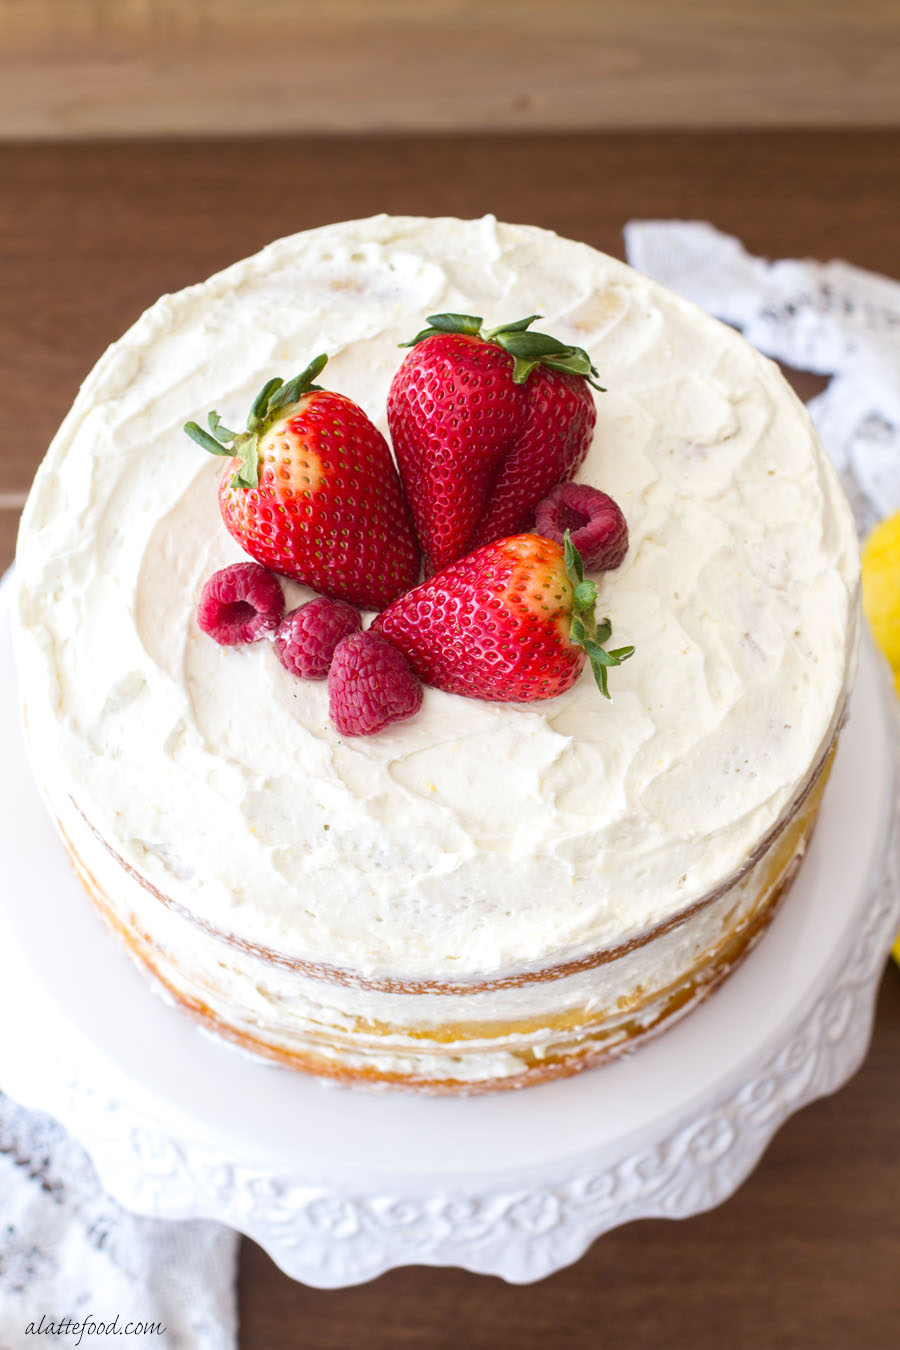 17 Naked Cakes and How to Make Your Own | A Practical Wedding